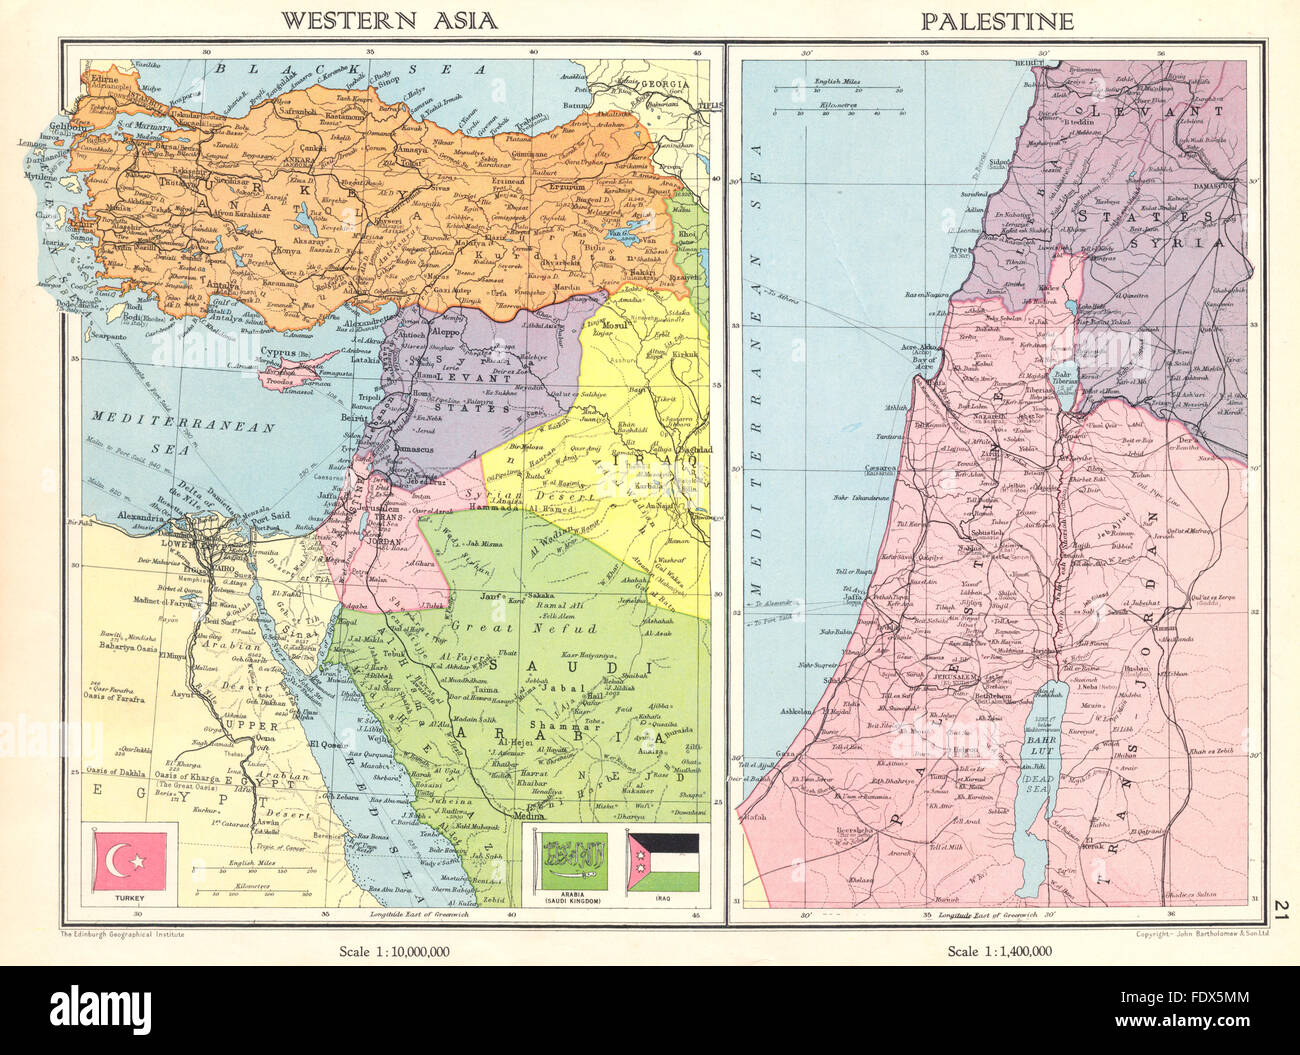 Middle east turkey transjordan palestine israel syria levant states middle east turkey transjordan palestine israel syria levant states 1938 map gumiabroncs Image collections